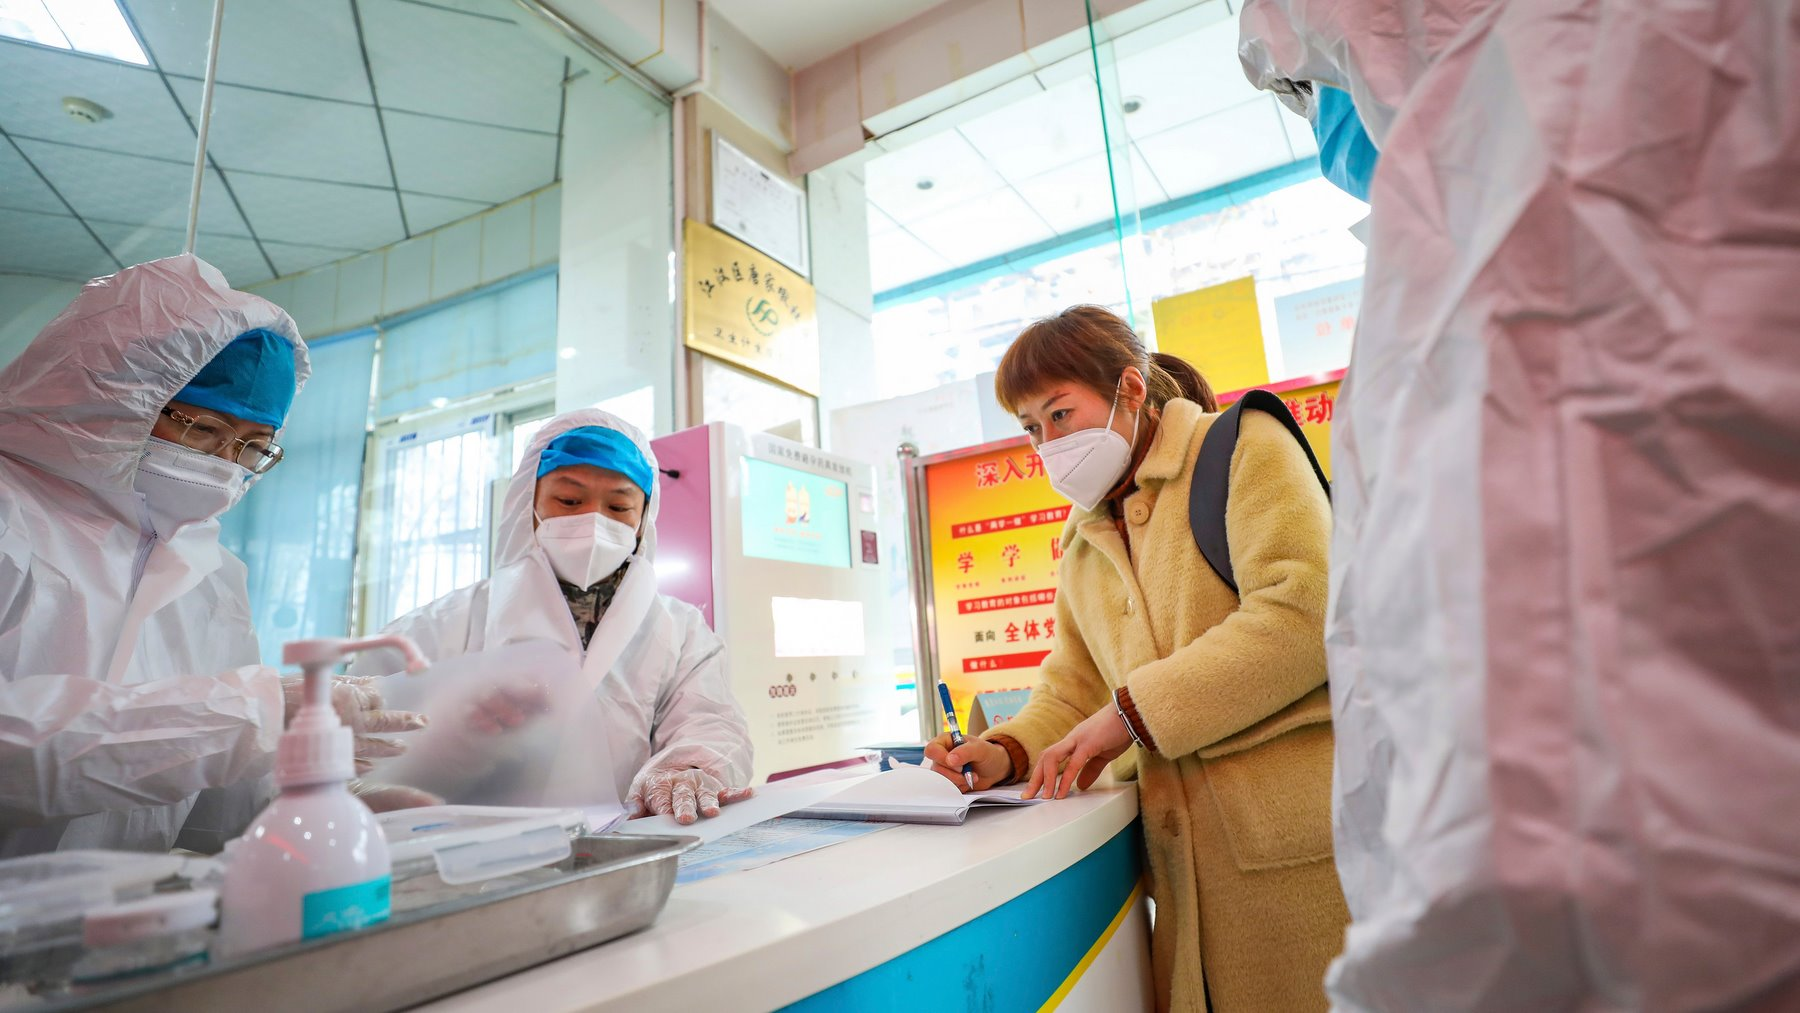 Medical workers in protective gear talk with a woman suspected of being ill with a coronavirus at a community health station in Wuhan